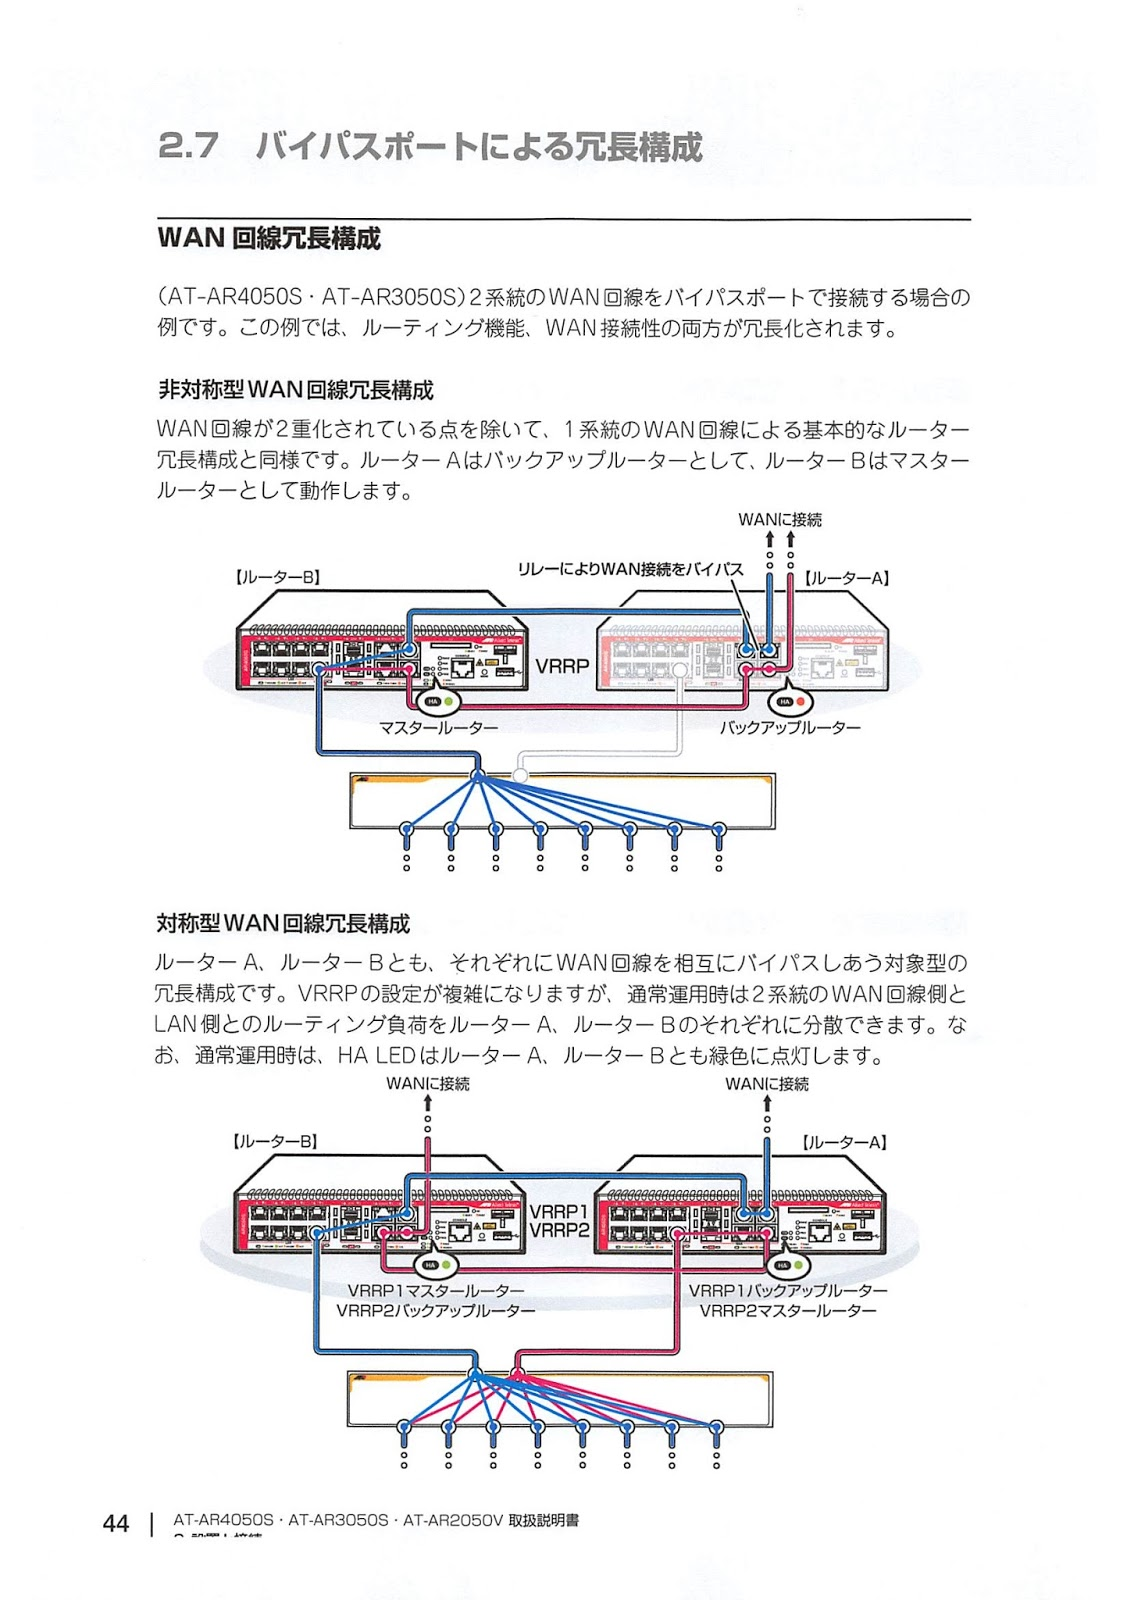 Allied telesis Router manual